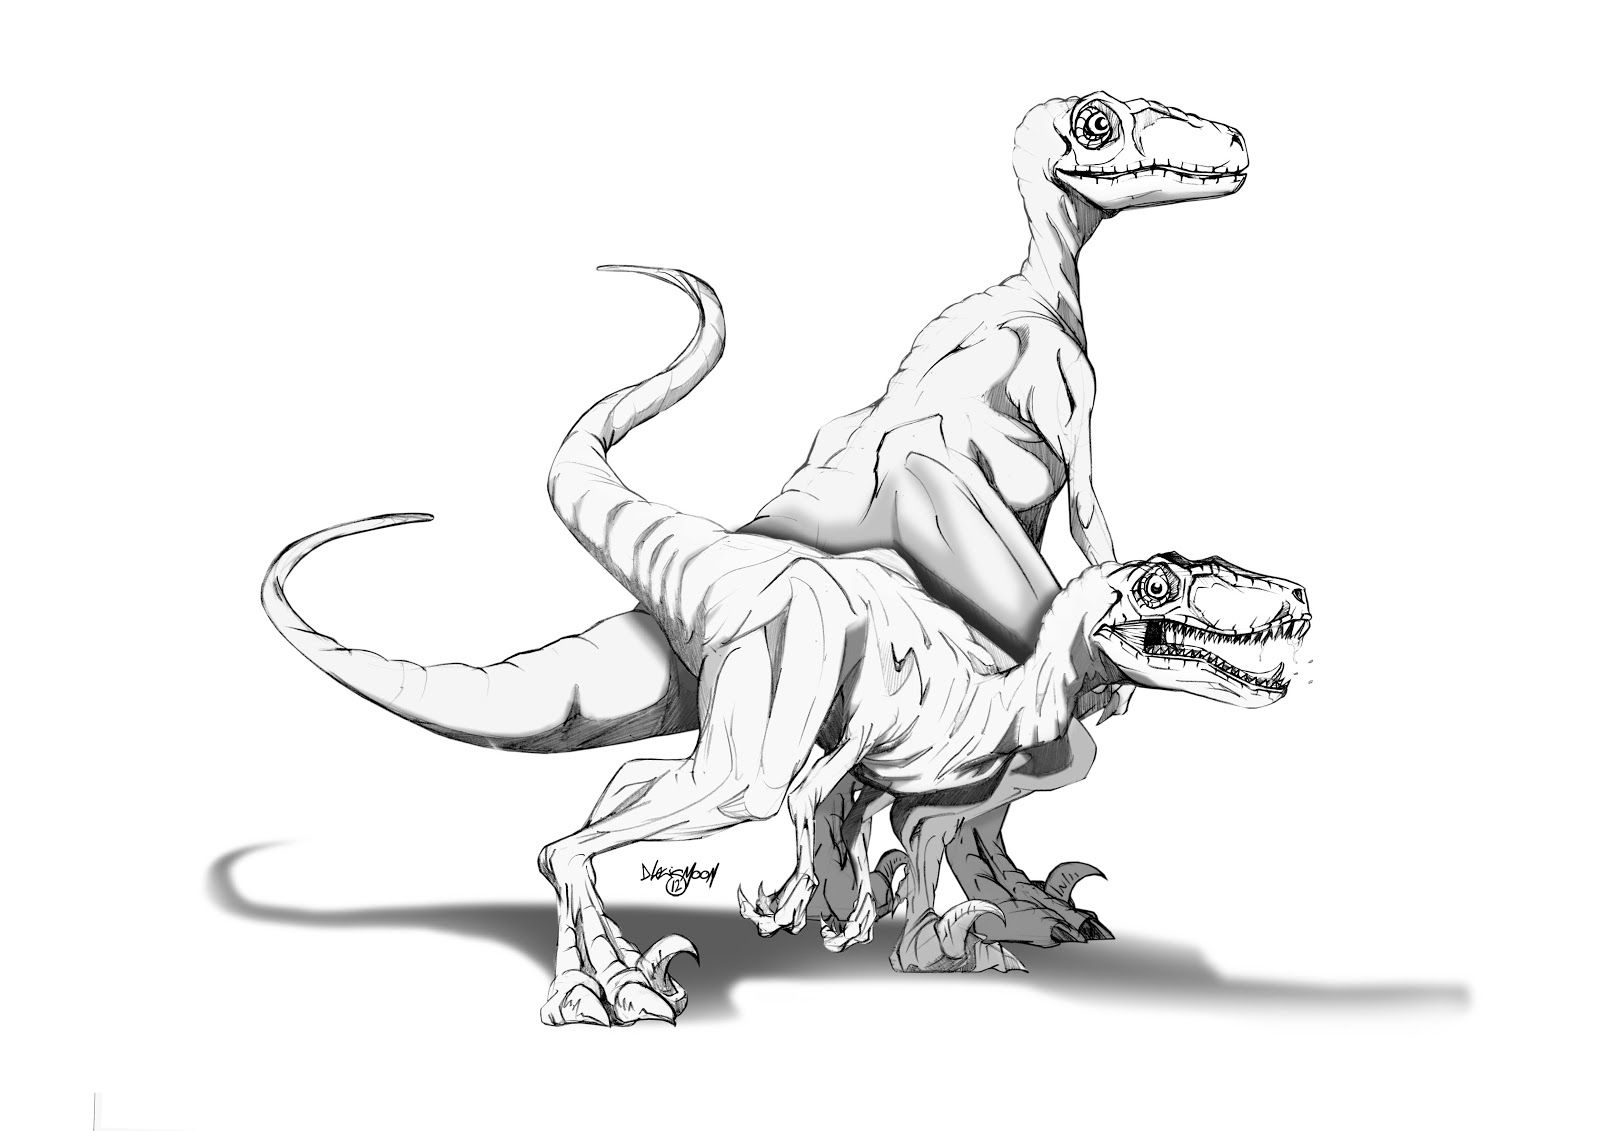 velociraptor jurassic park coloring pages - photo#17